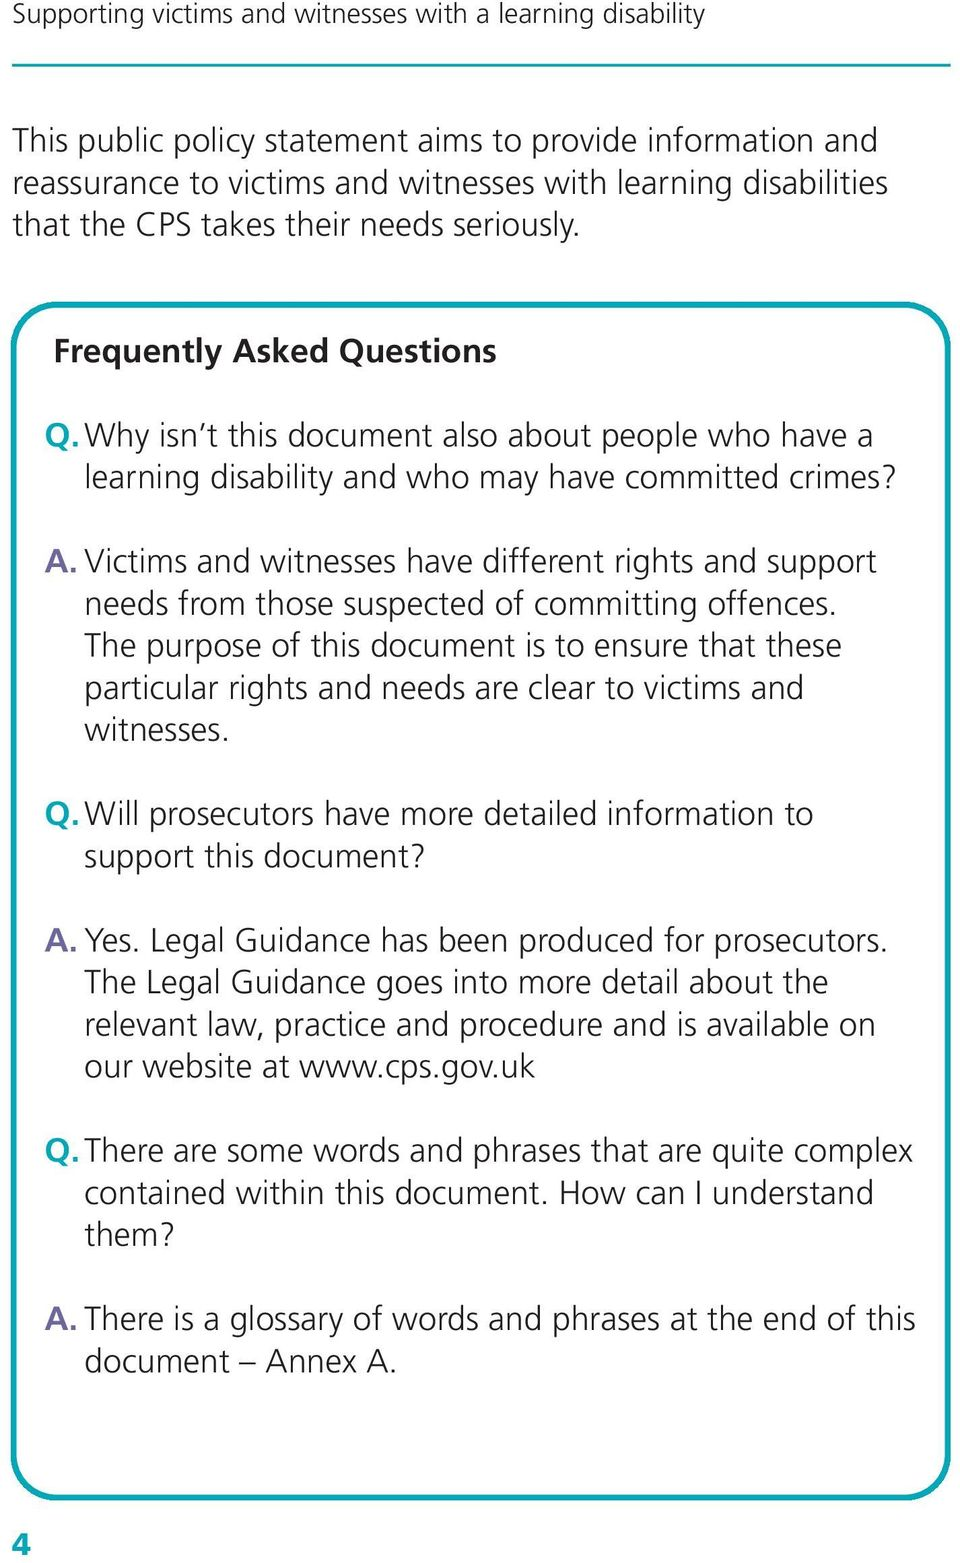 Victims and witnesses have different rights and support needs from those suspected of committing offences.